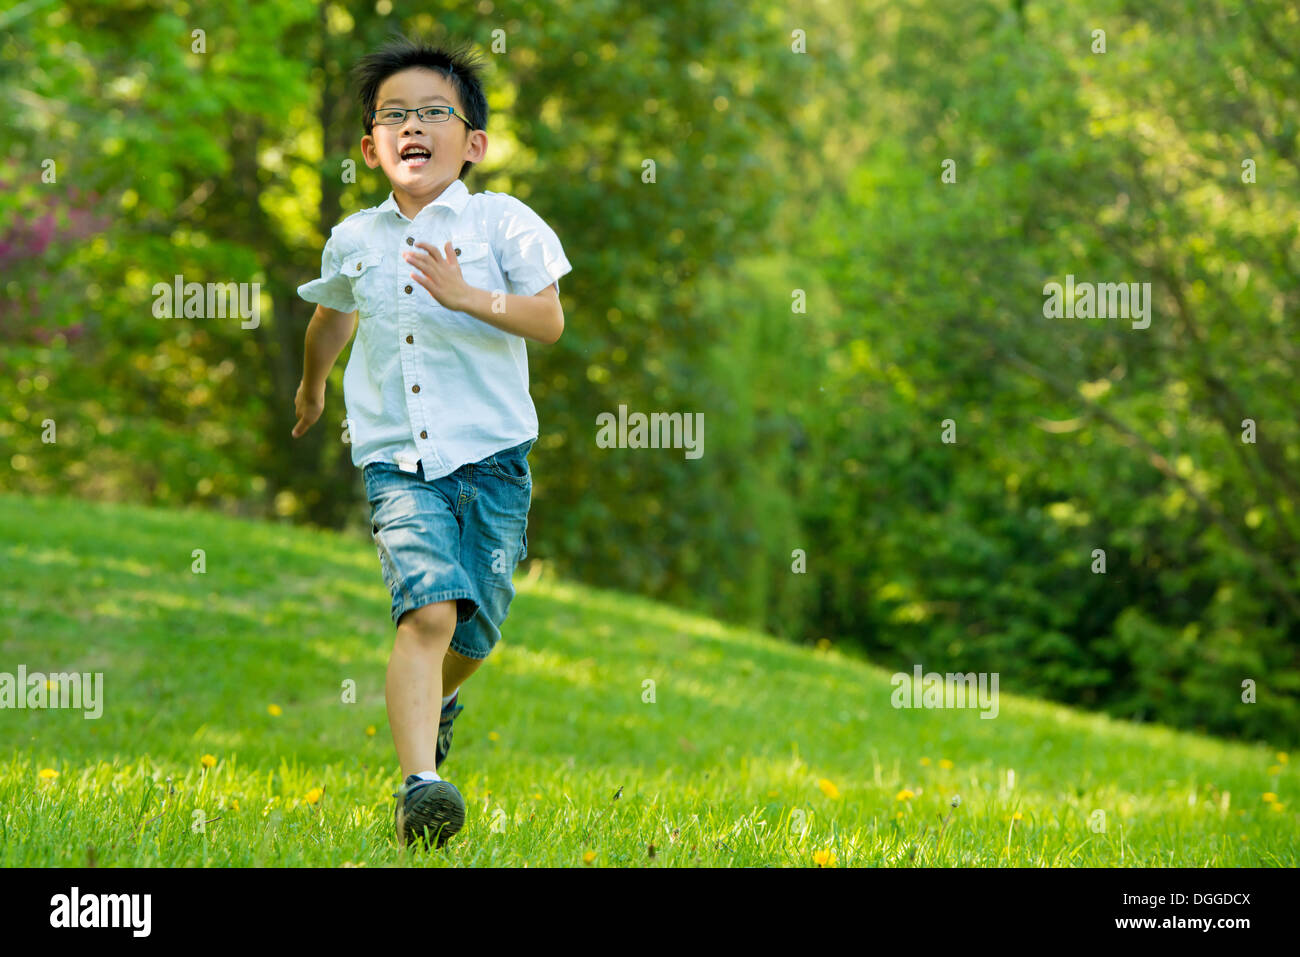 Boy running on grass Photo Stock